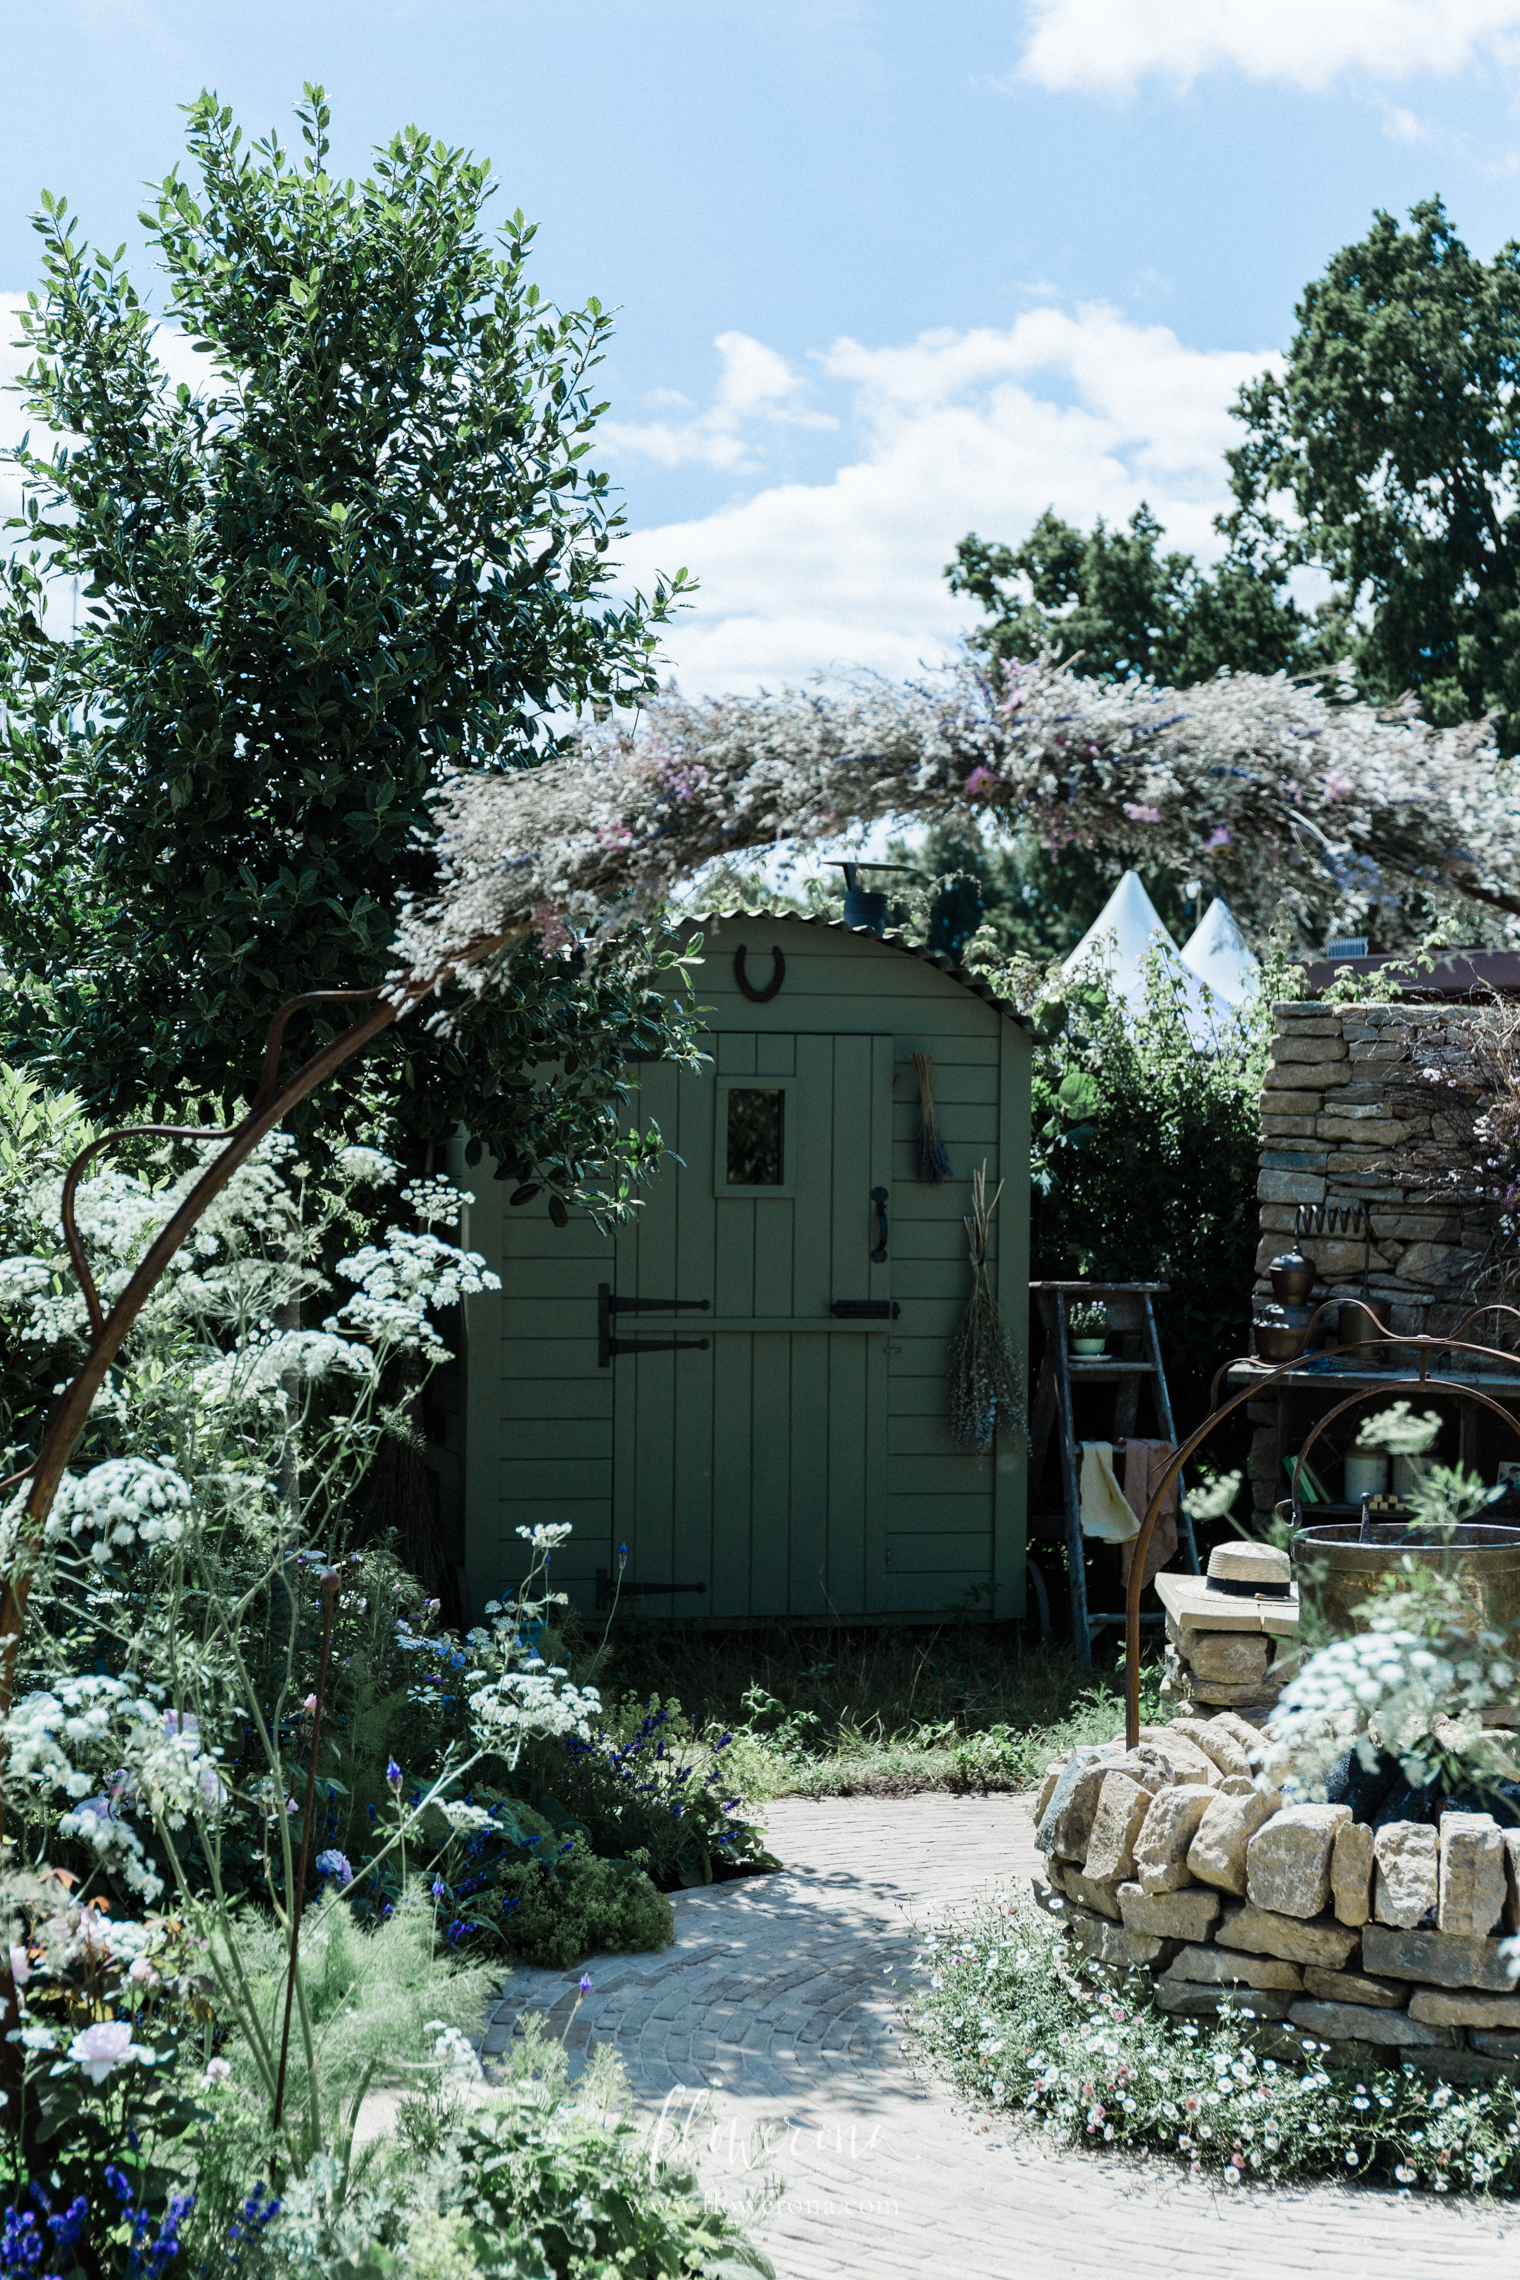 The Naturecraft Garden by Pollyanna Wilkinson at RHS Hampton 2019